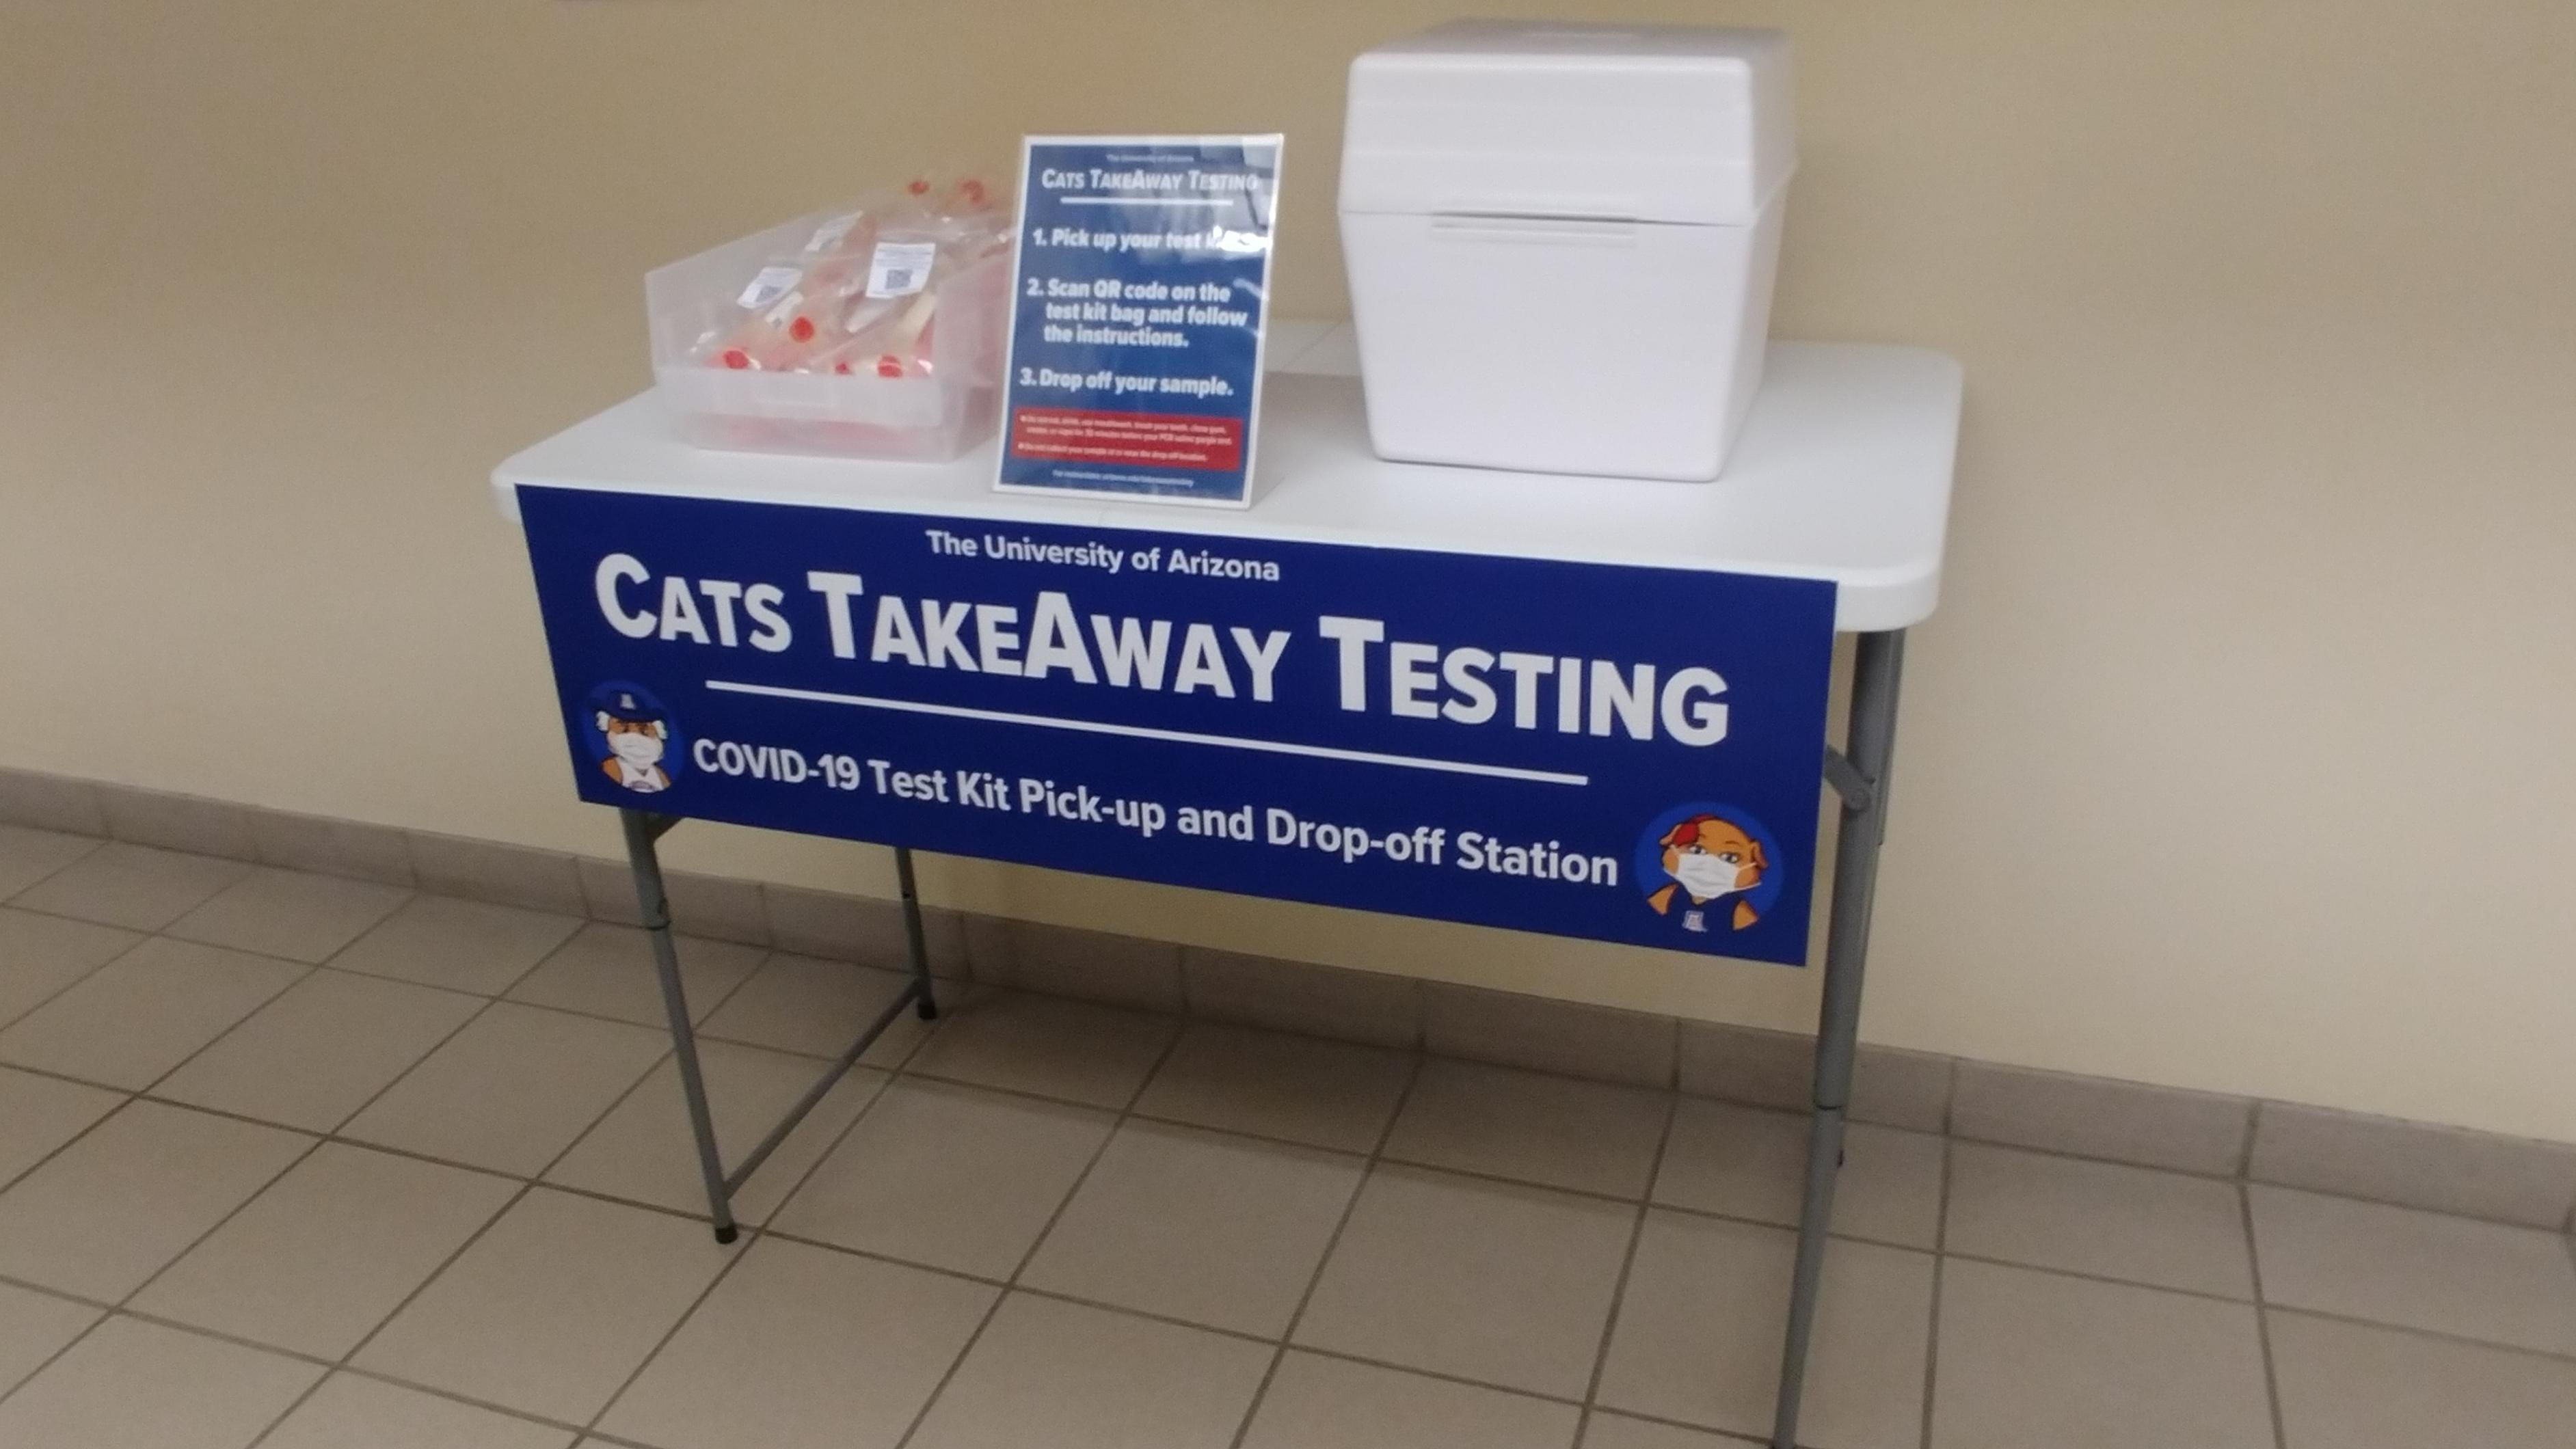 HSL CATS TakeAway Testing tests on a table with a sign